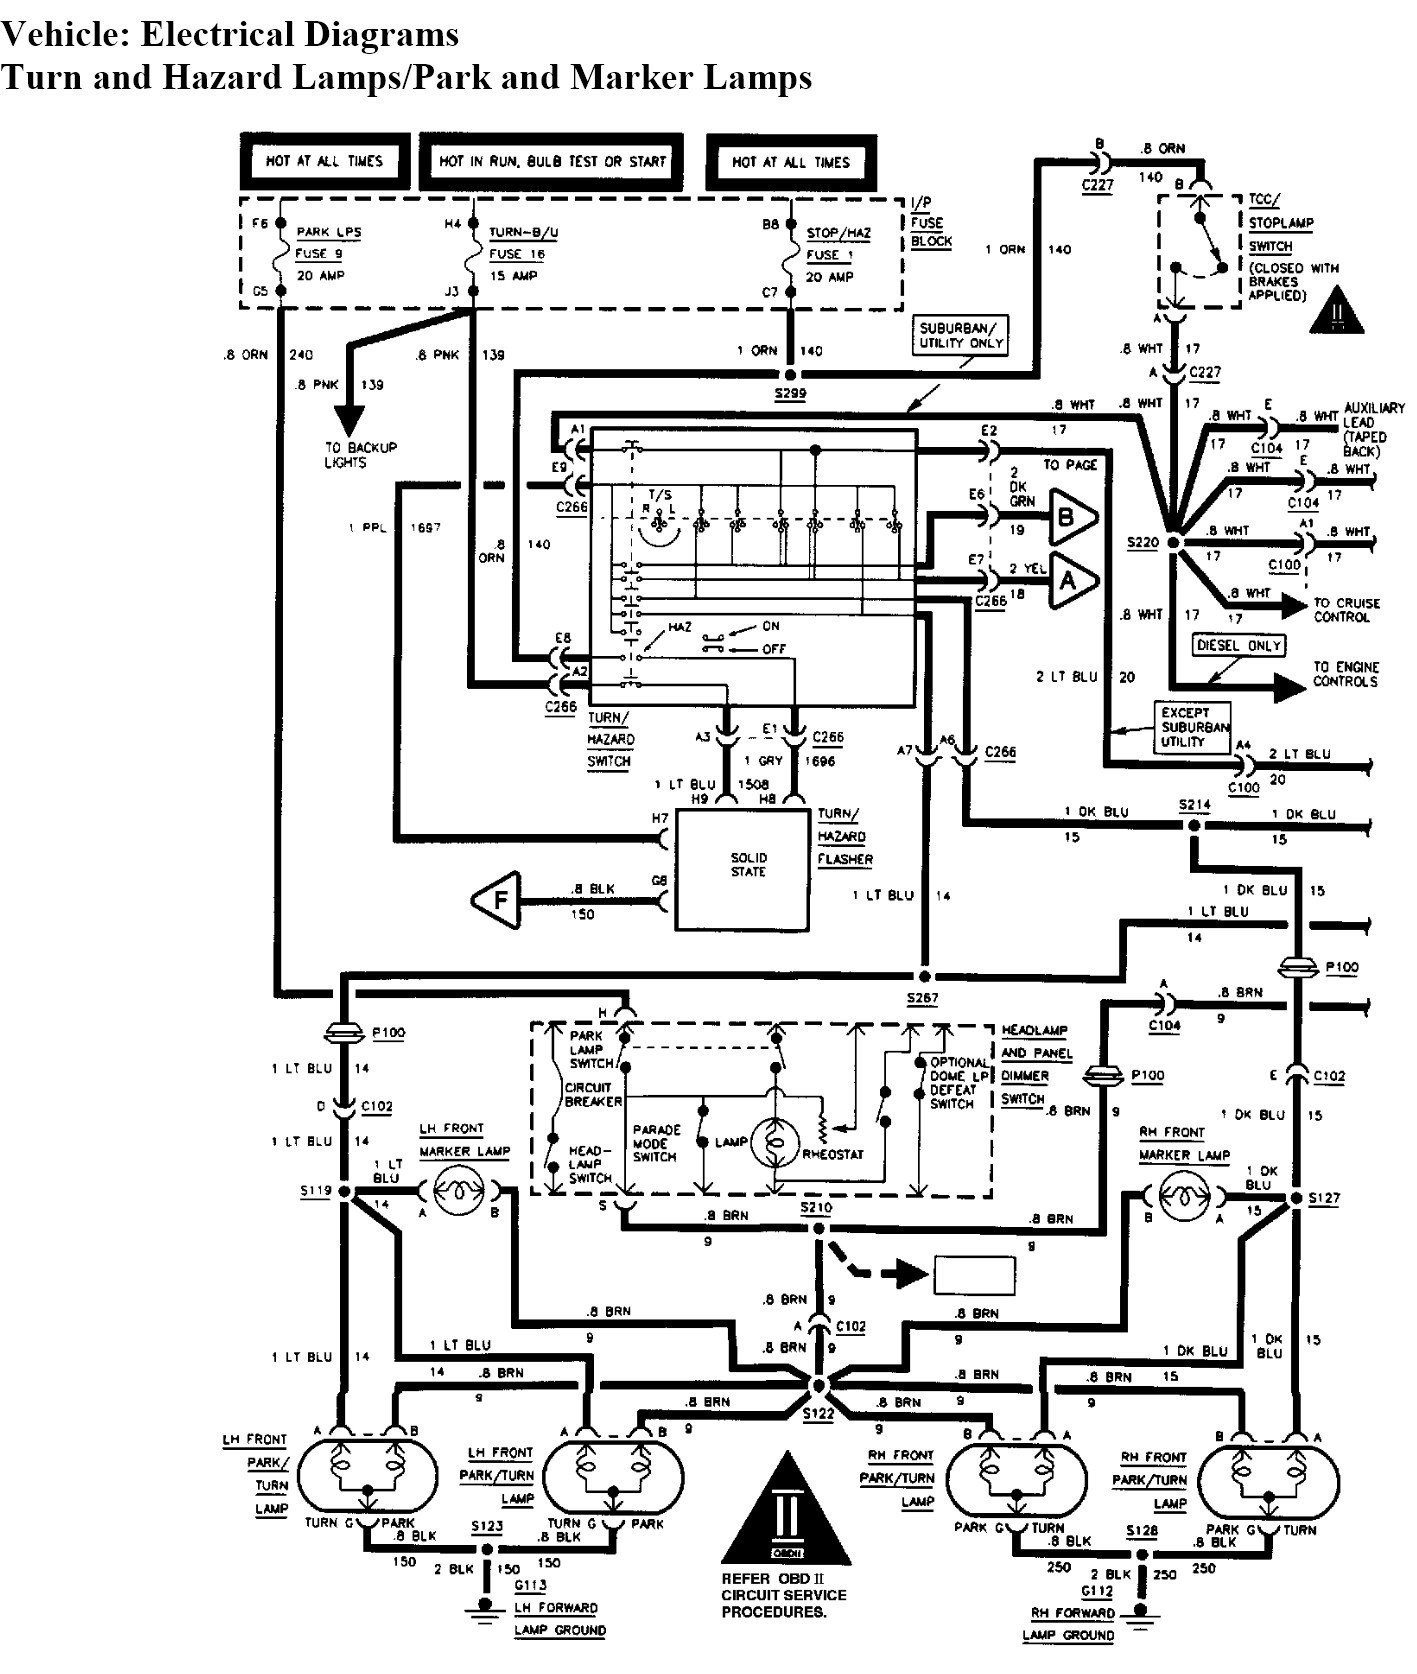 1990 gmc brake light switch wiring electrical drawing wiring diagram u2022 rh circuitdiagramlabs today 2000 Ford Mustang Radio 2007 Ford Mustang GT Wiring-Diagram